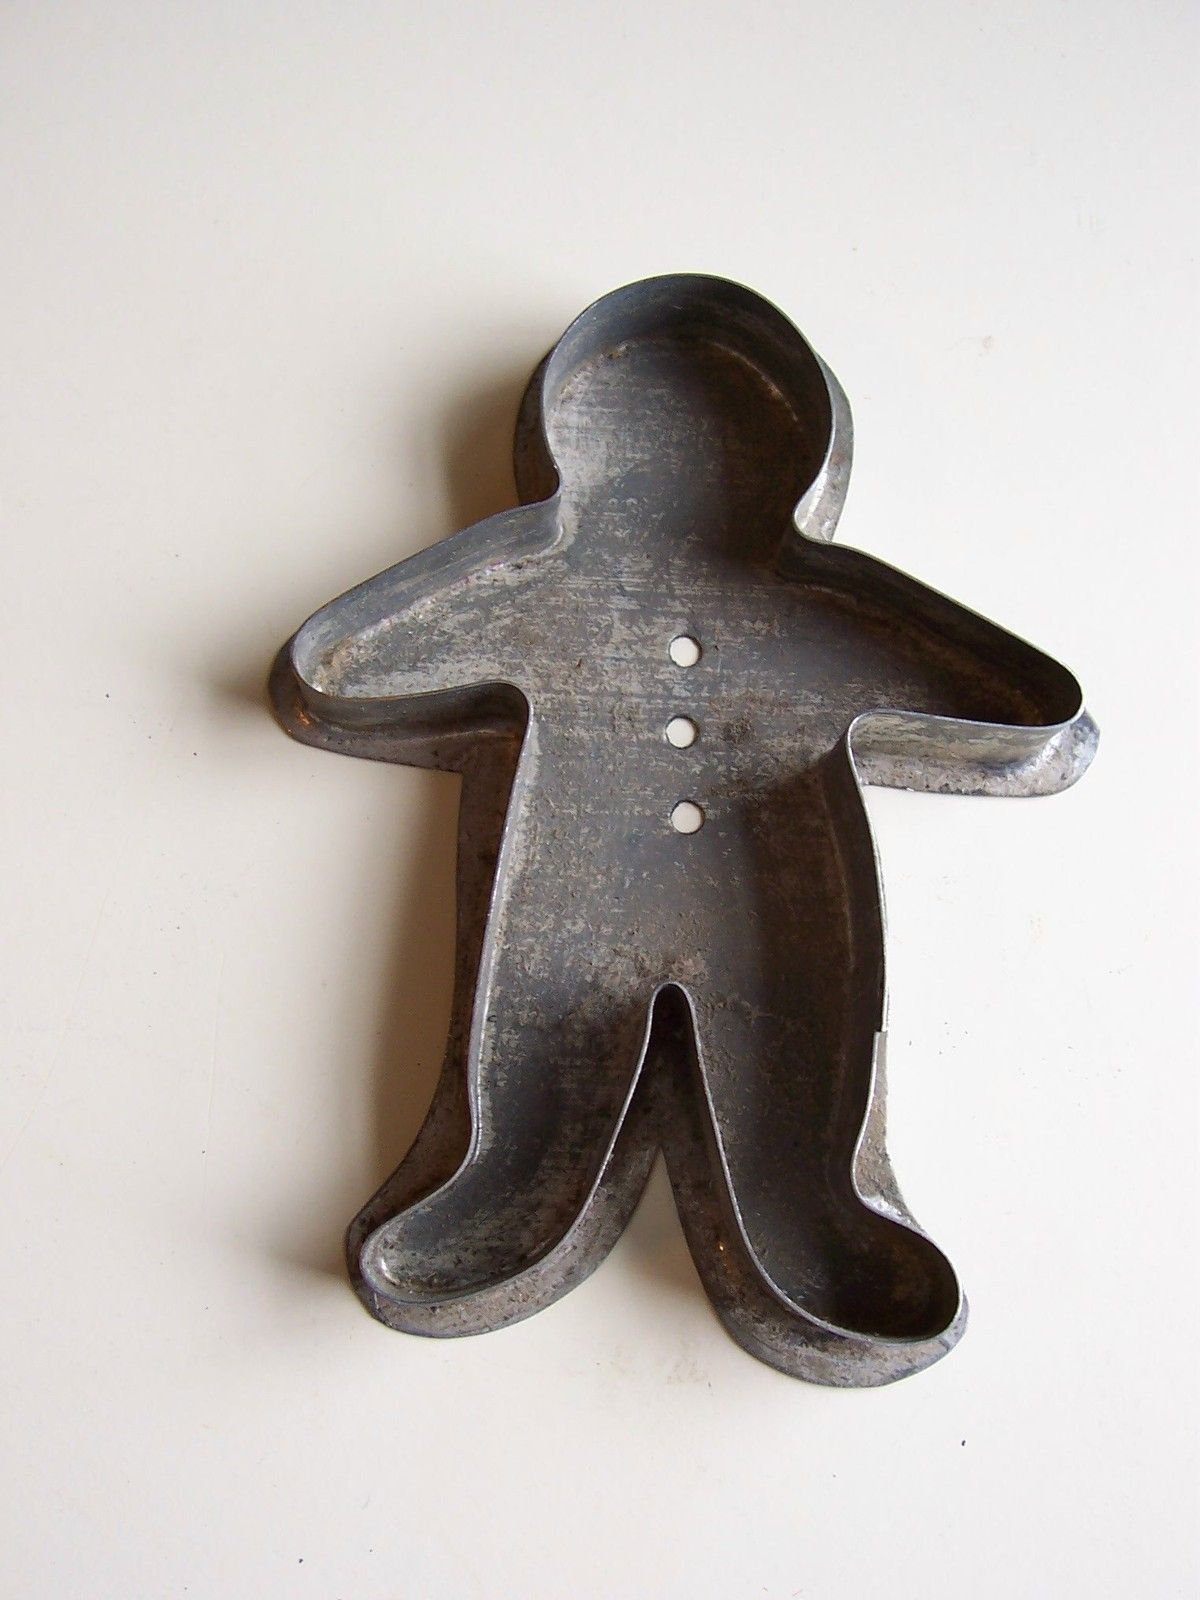 Antique Gingerbread Man Cookie Cutter. Ginger